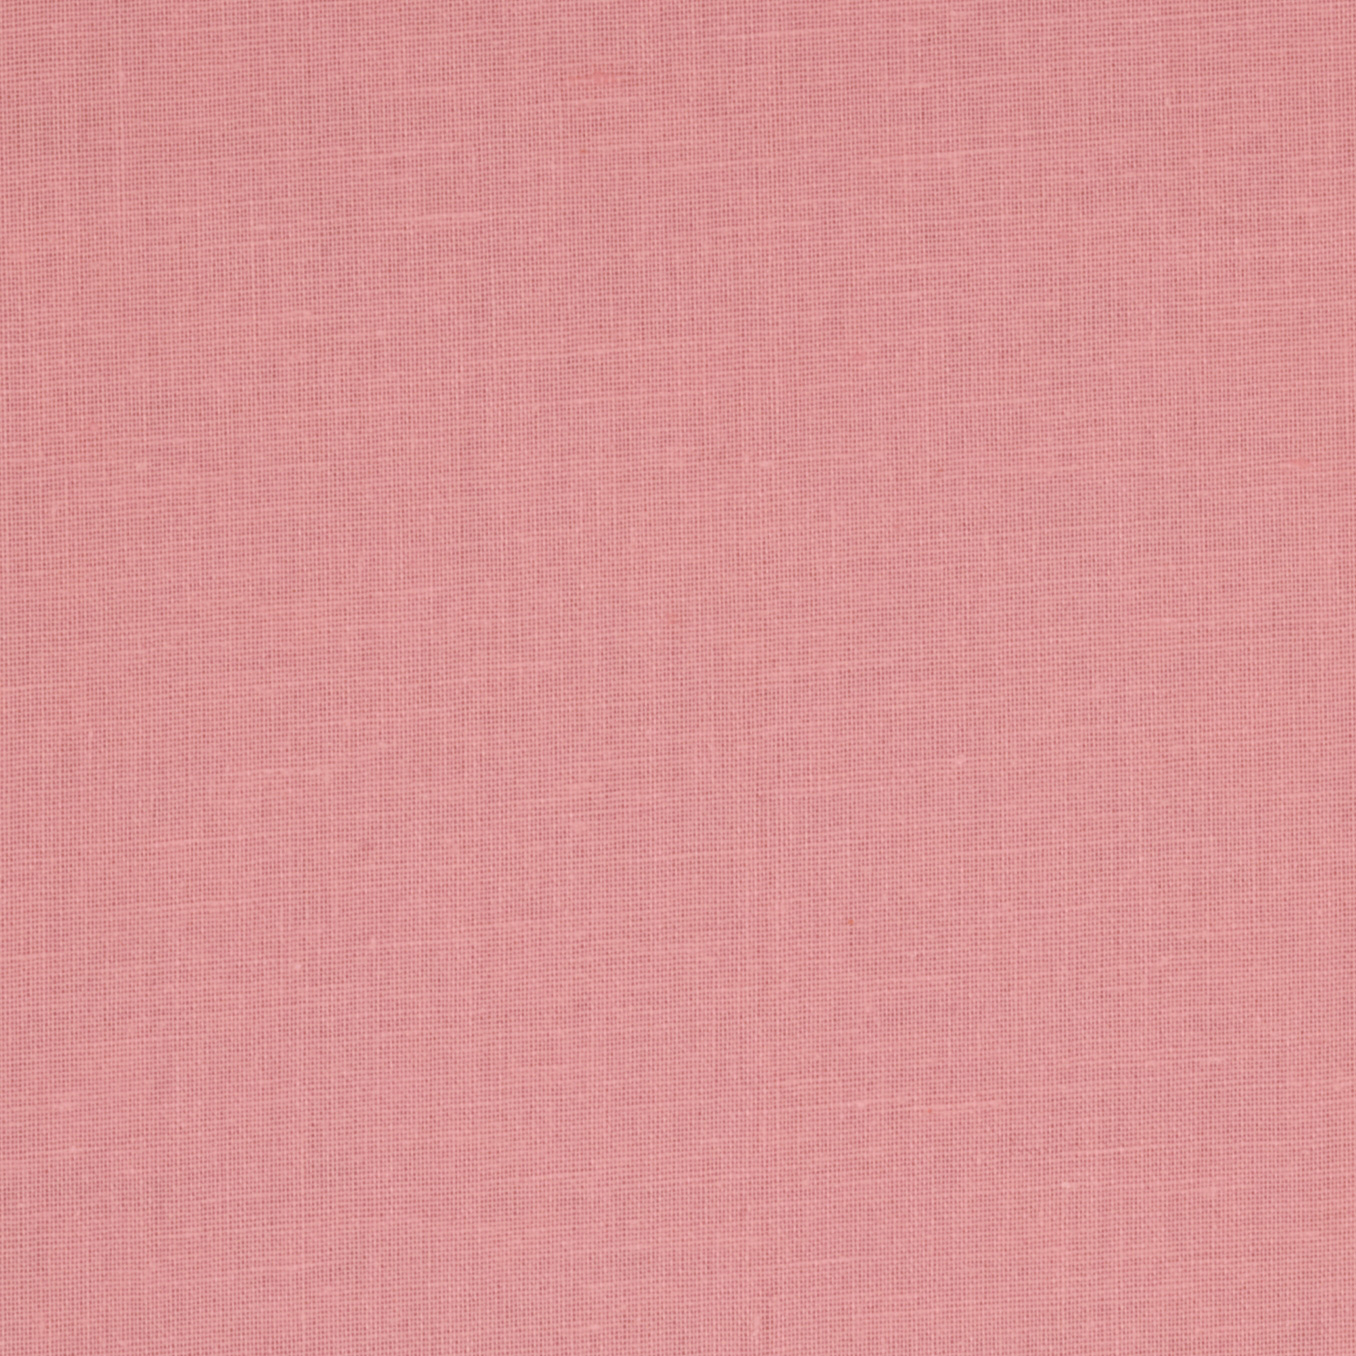 Cotton Broadcloth Pink Fabric